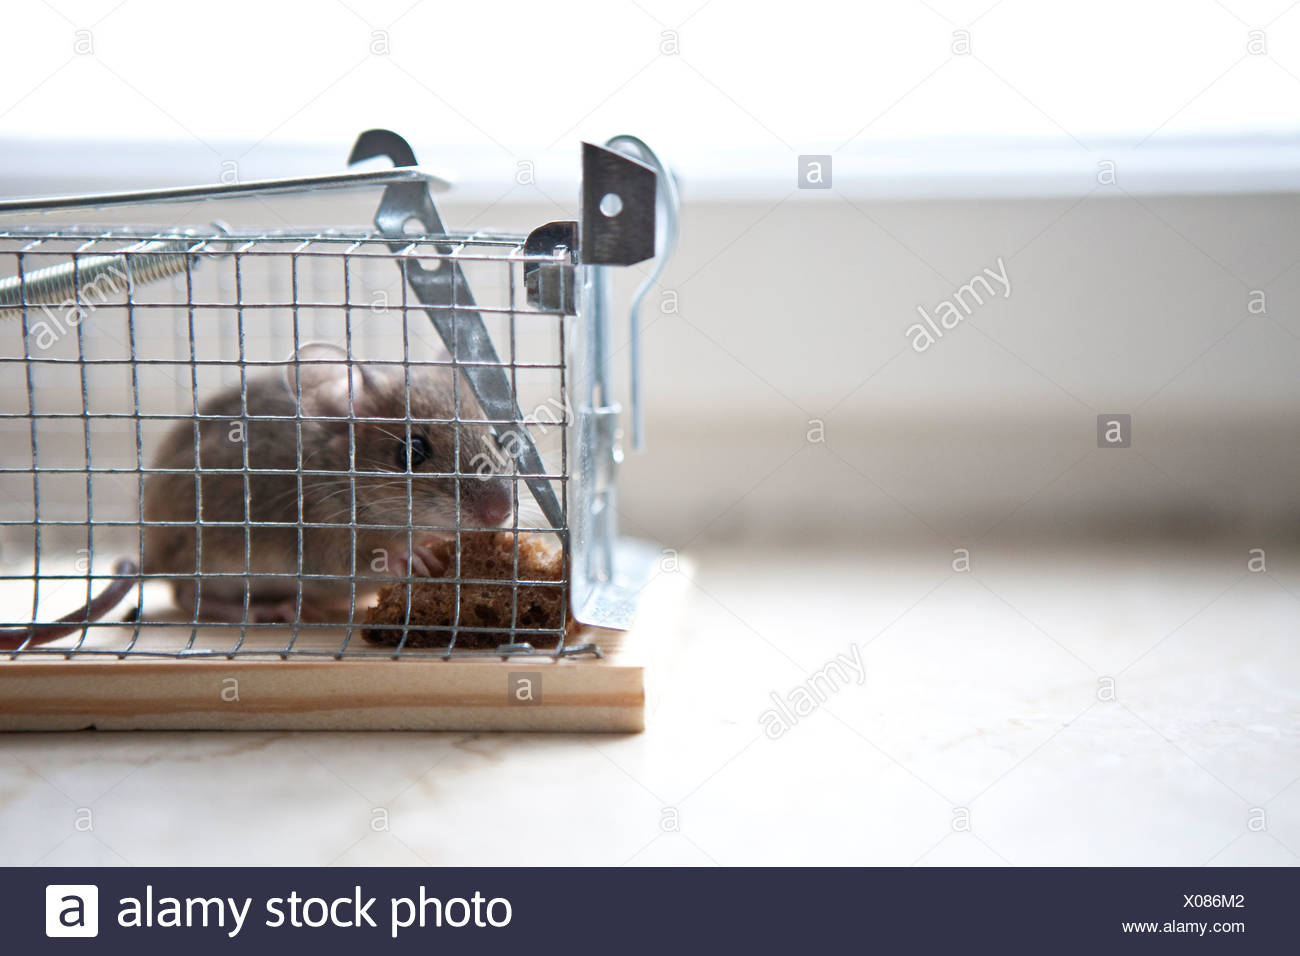 Mouse in trap - Stock Image